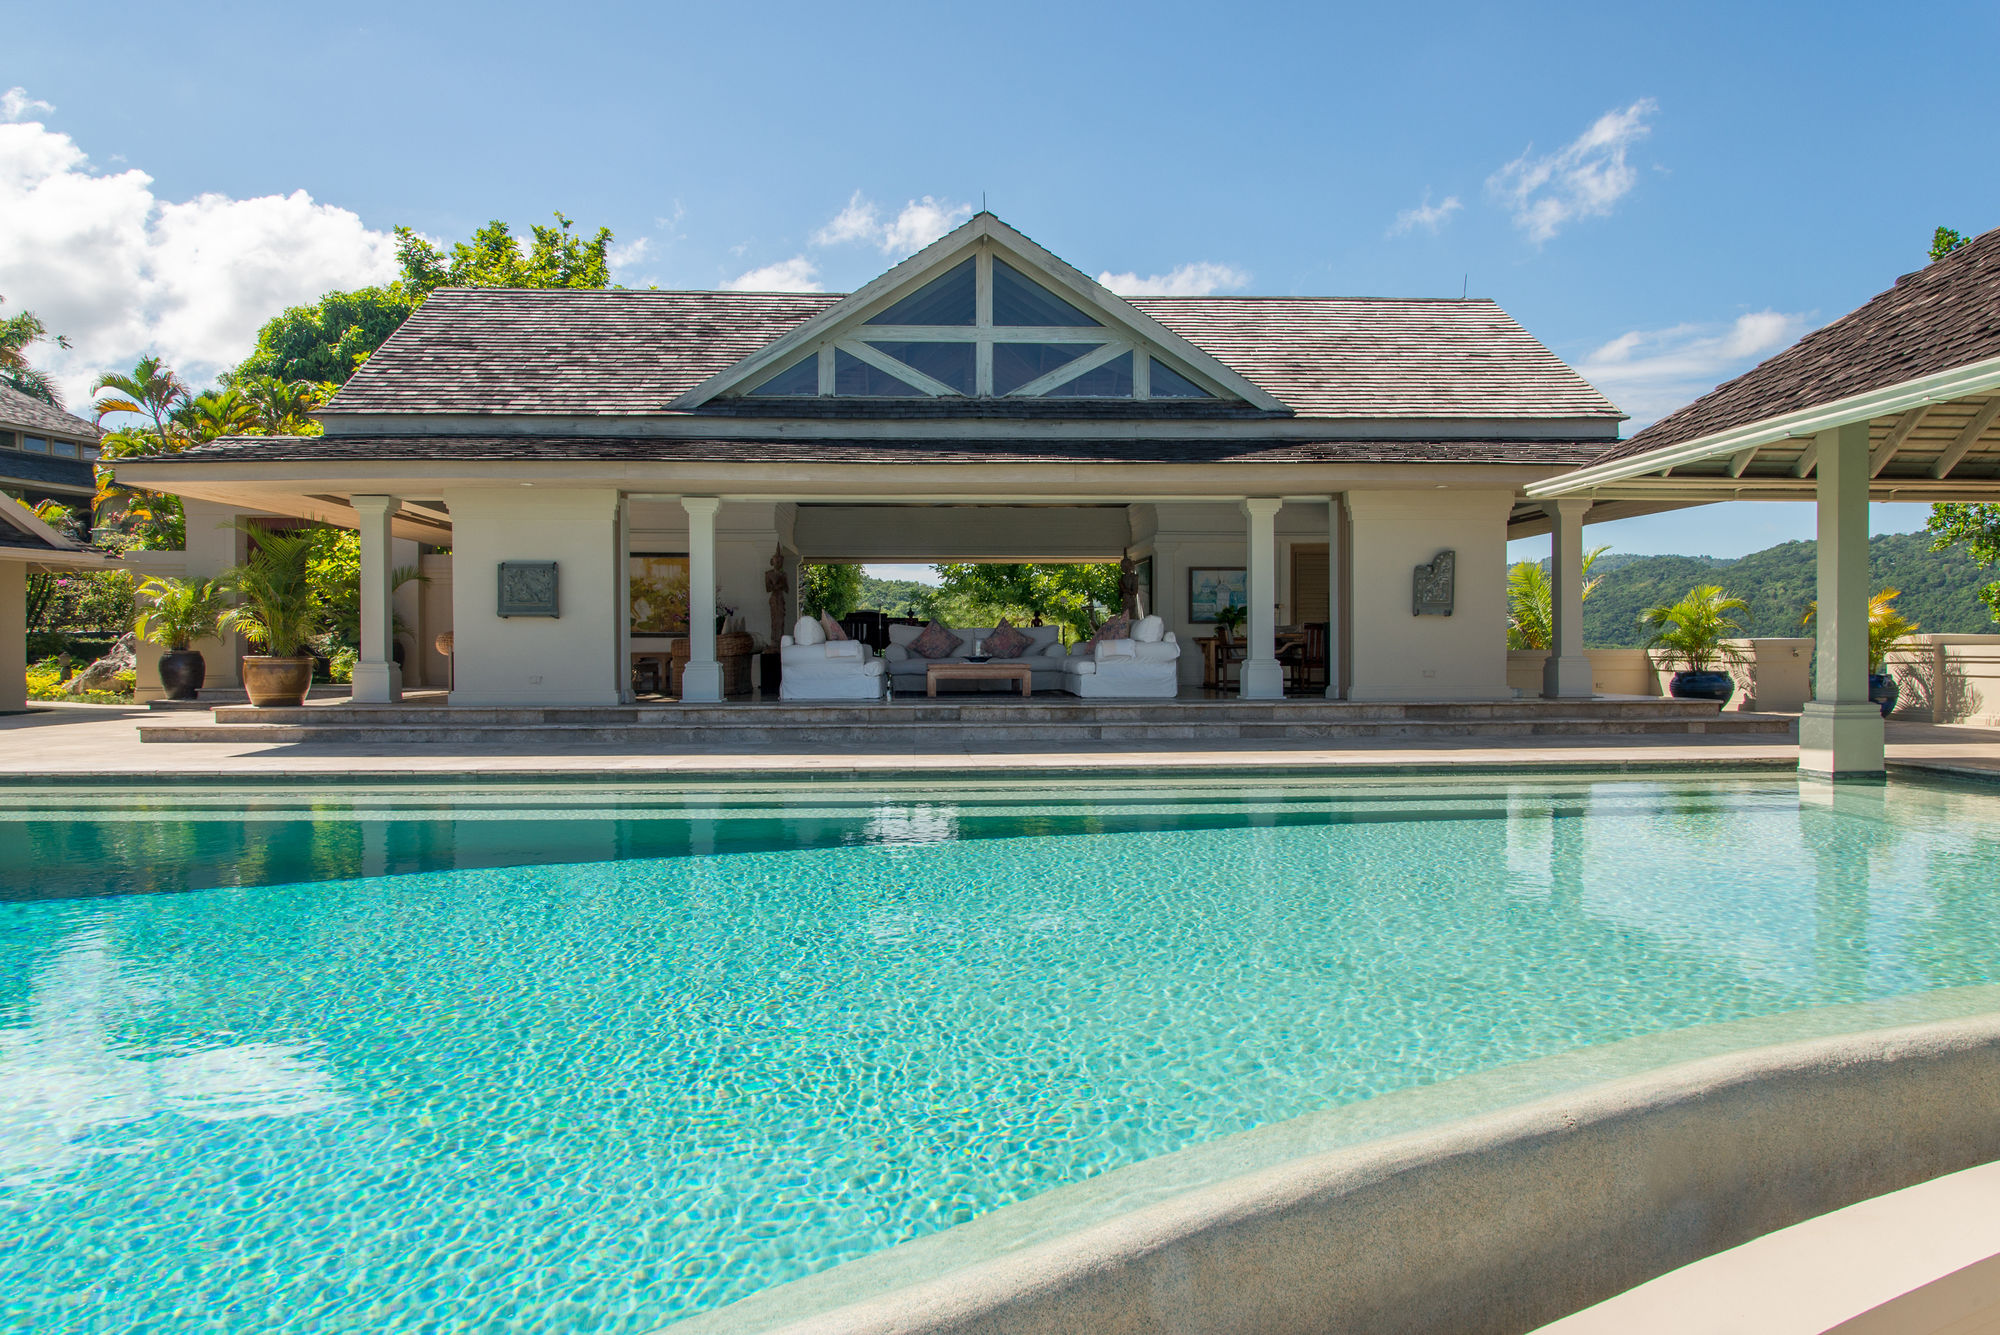 Book Silent Waters Villa With Tajawal Book Now At Best Low Prices